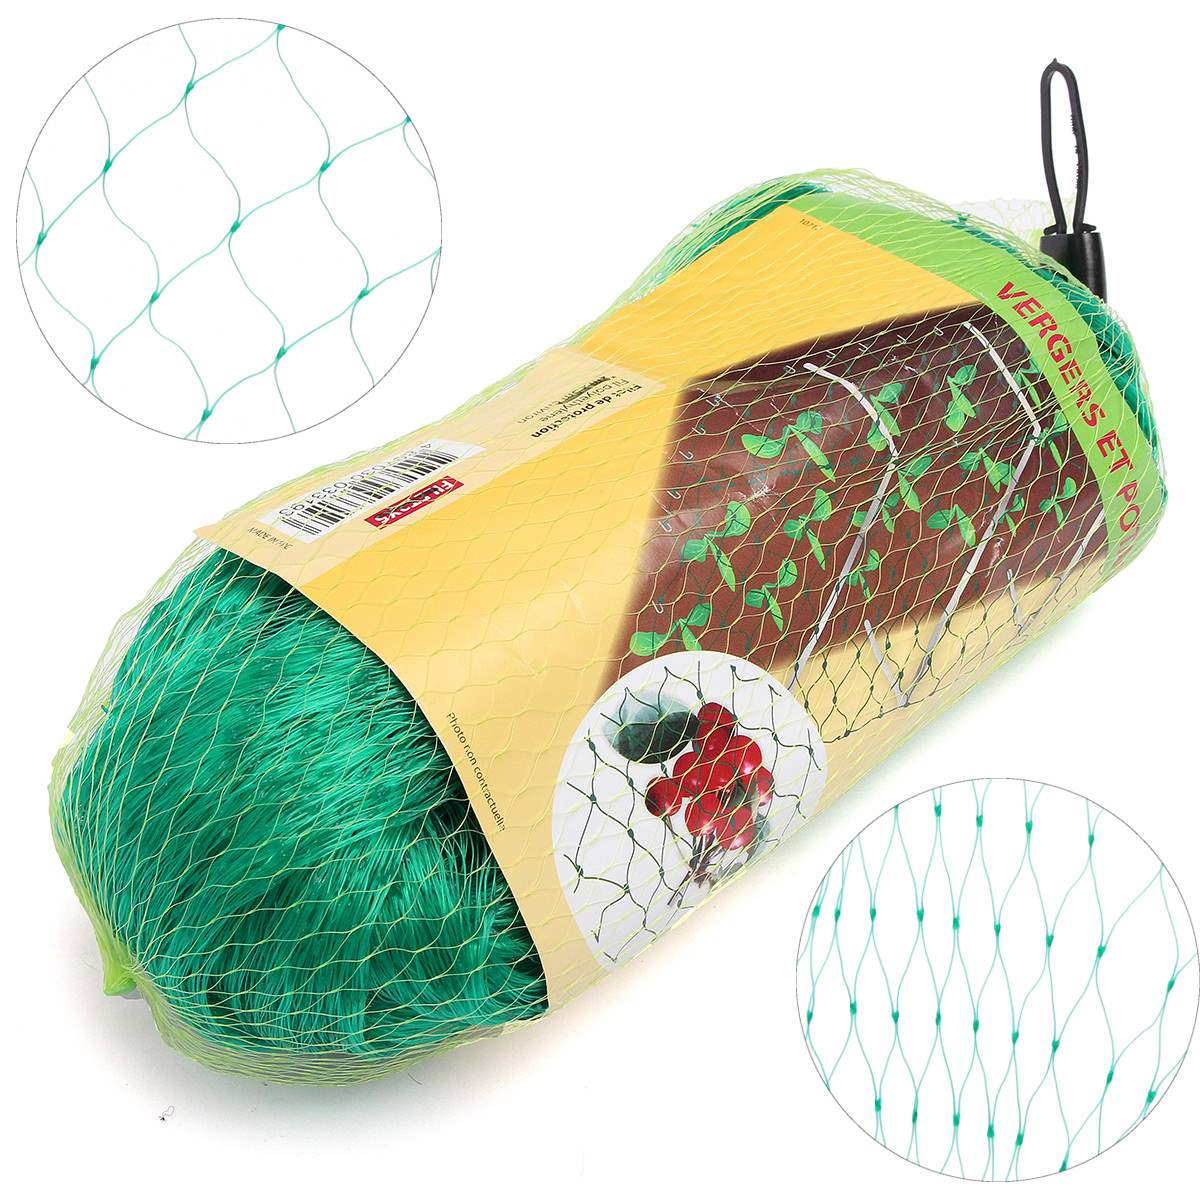 Anti Bird Netting Plastic Pond Fruit Tree Vegetables Net Protection Crops Flower Garden Mesh Protect Gardening Pest Control 4x6mAnti Bird Netting Plastic Pond Fruit Tree Vegetables Net Protection Crops Flower Garden Mesh Protect Gardening Pest Control 4x6m